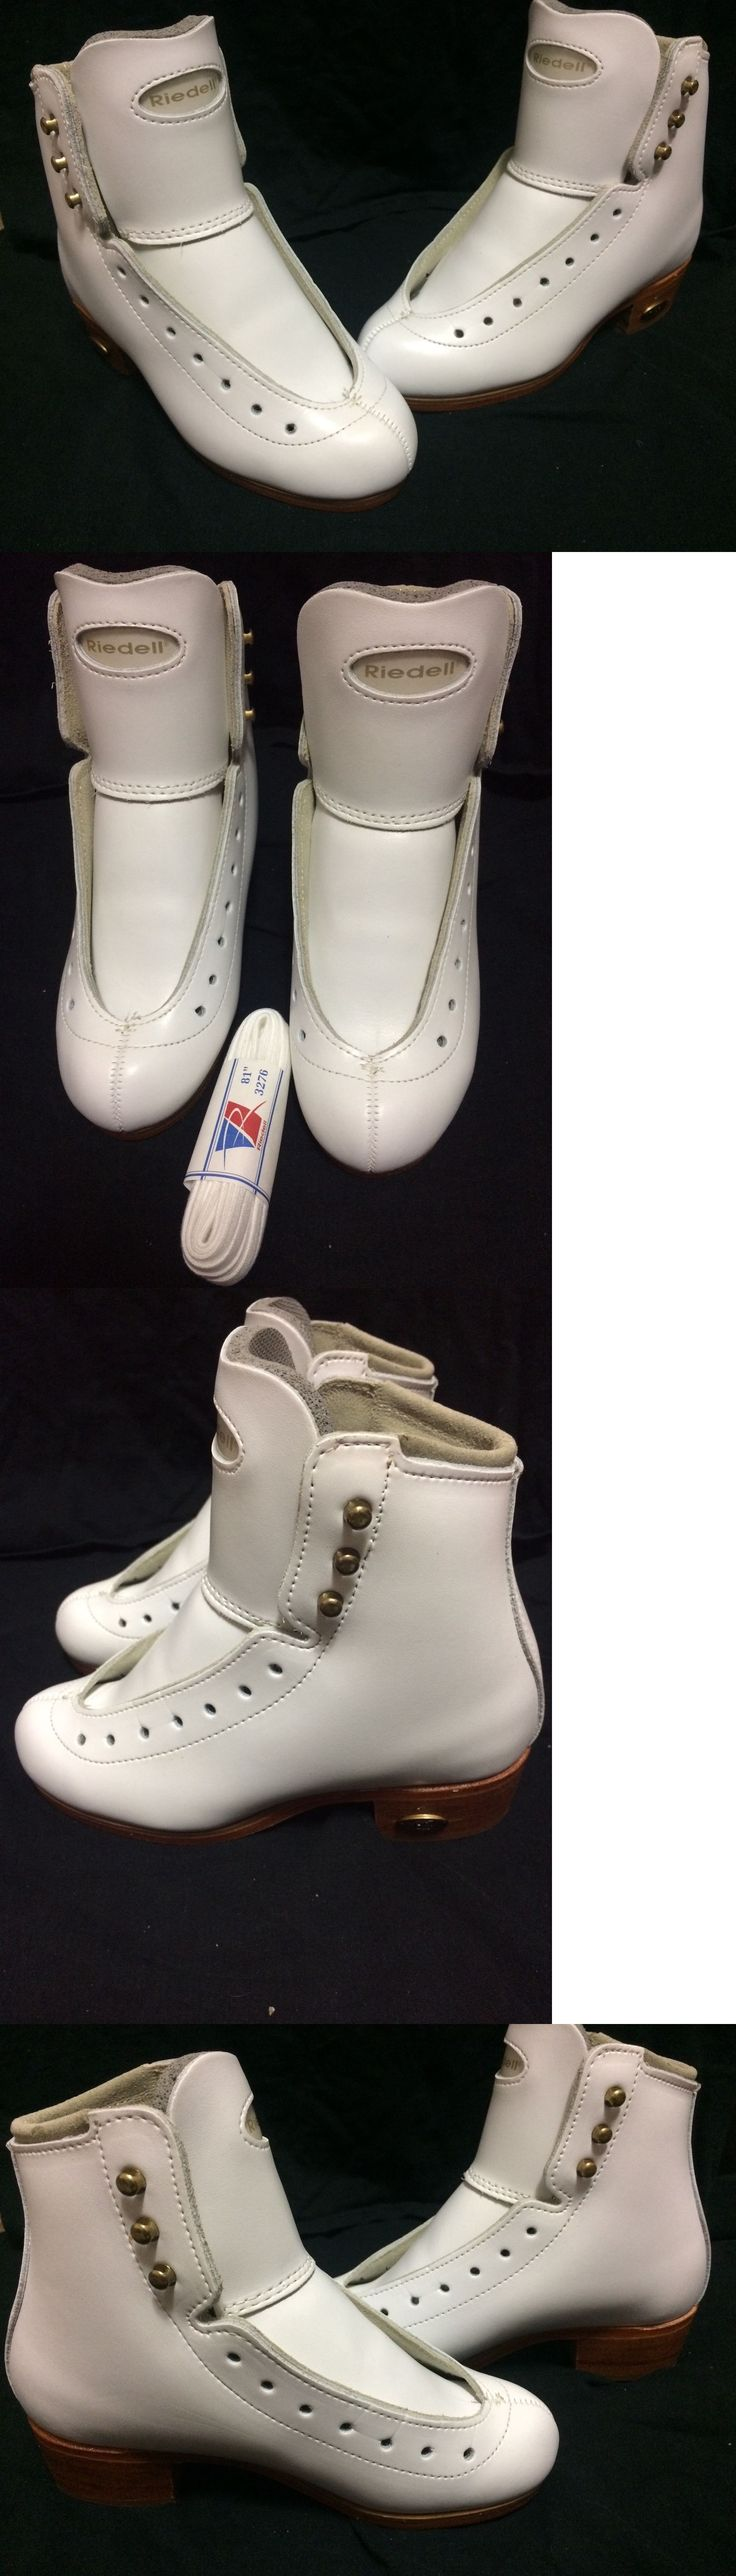 Women 21227: Riedell Ice Figure Skate Boots Model J32 Sizes 1, 1 1 2, 2, 2 1 2, 3 1 2 -> BUY IT NOW ONLY: $84 on eBay!